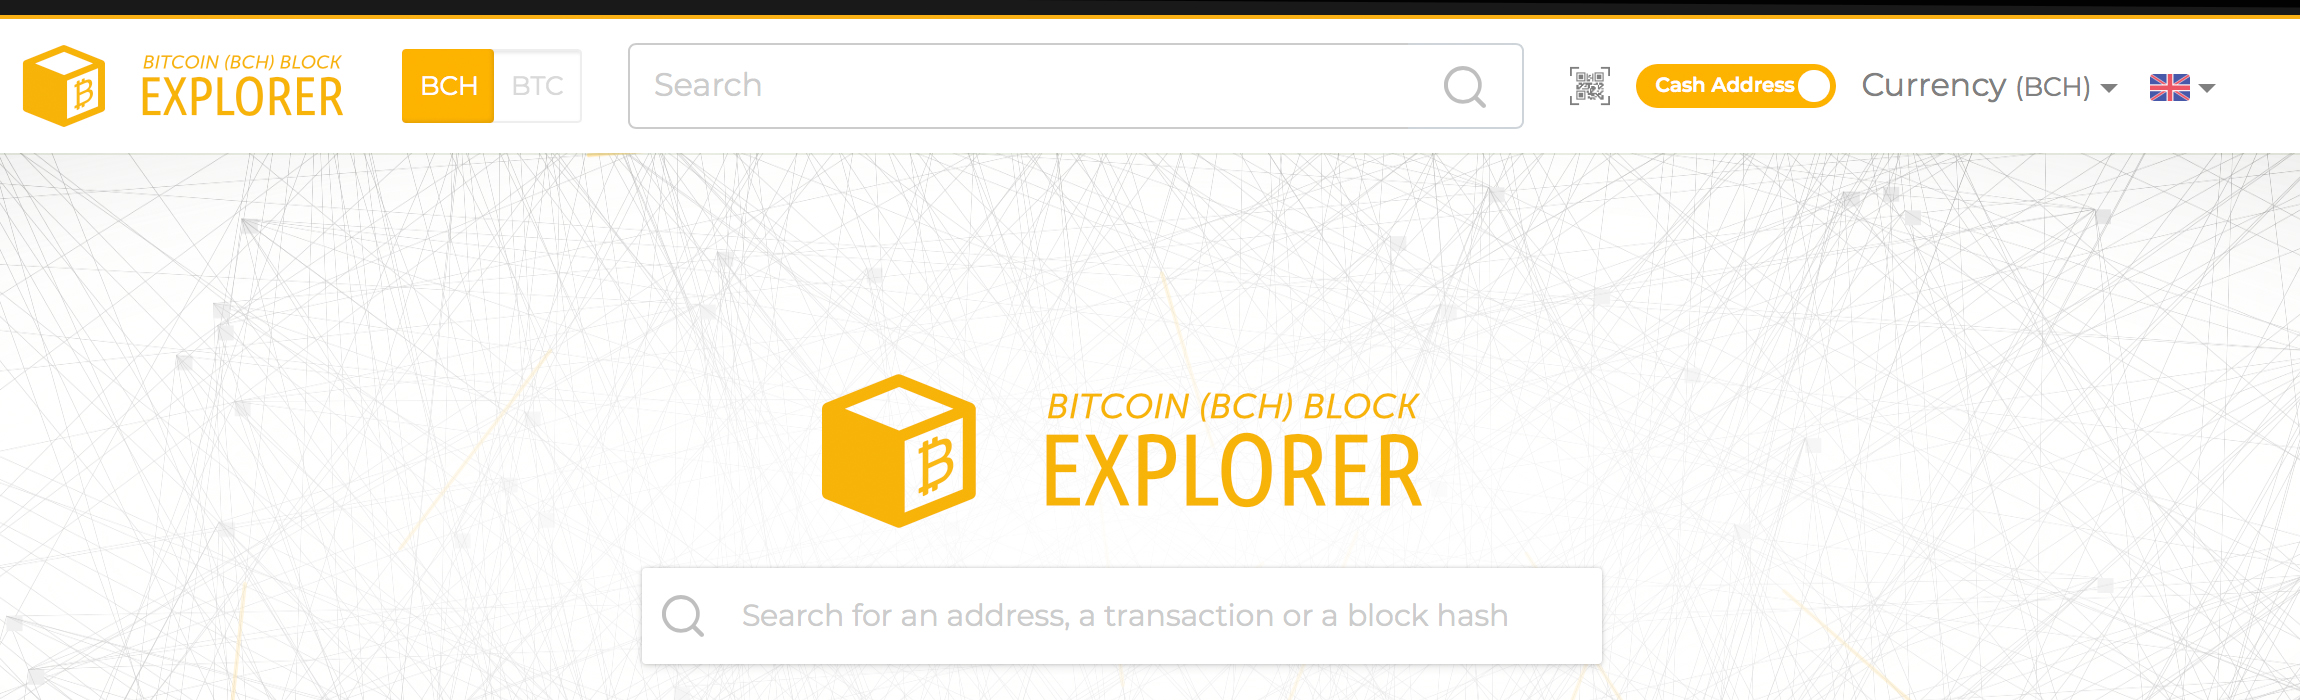 The Bitcoin BCH Block Explorer Explodes With Blockchain Data